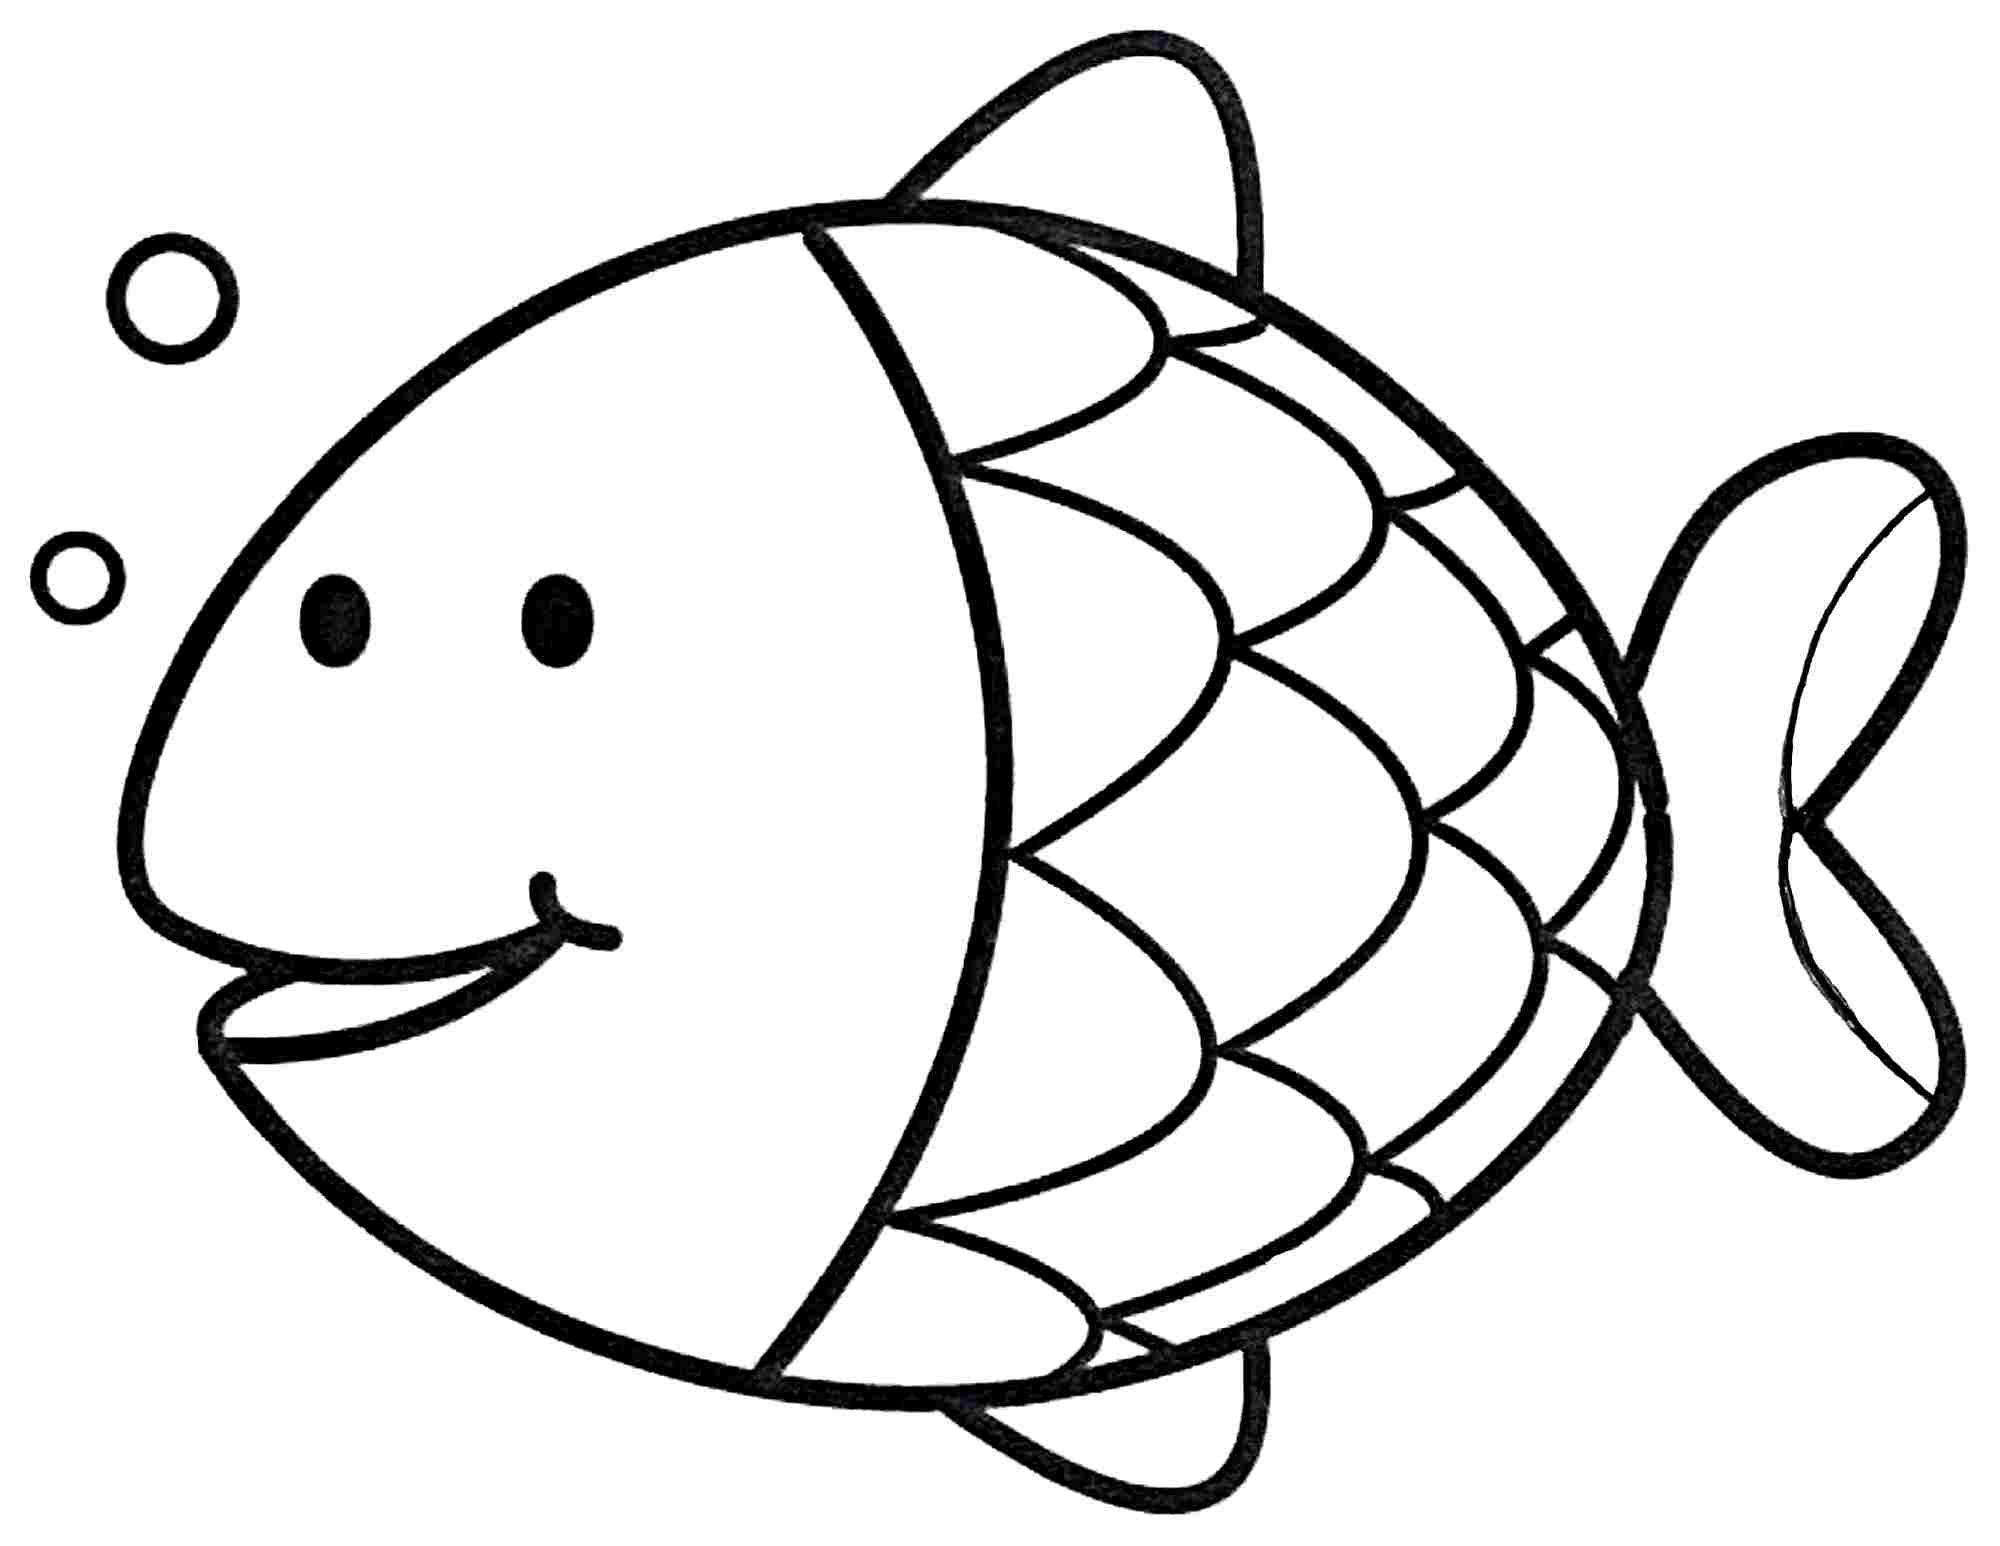 kids-printable-fish-coloring-pages.jpg (2000×1546